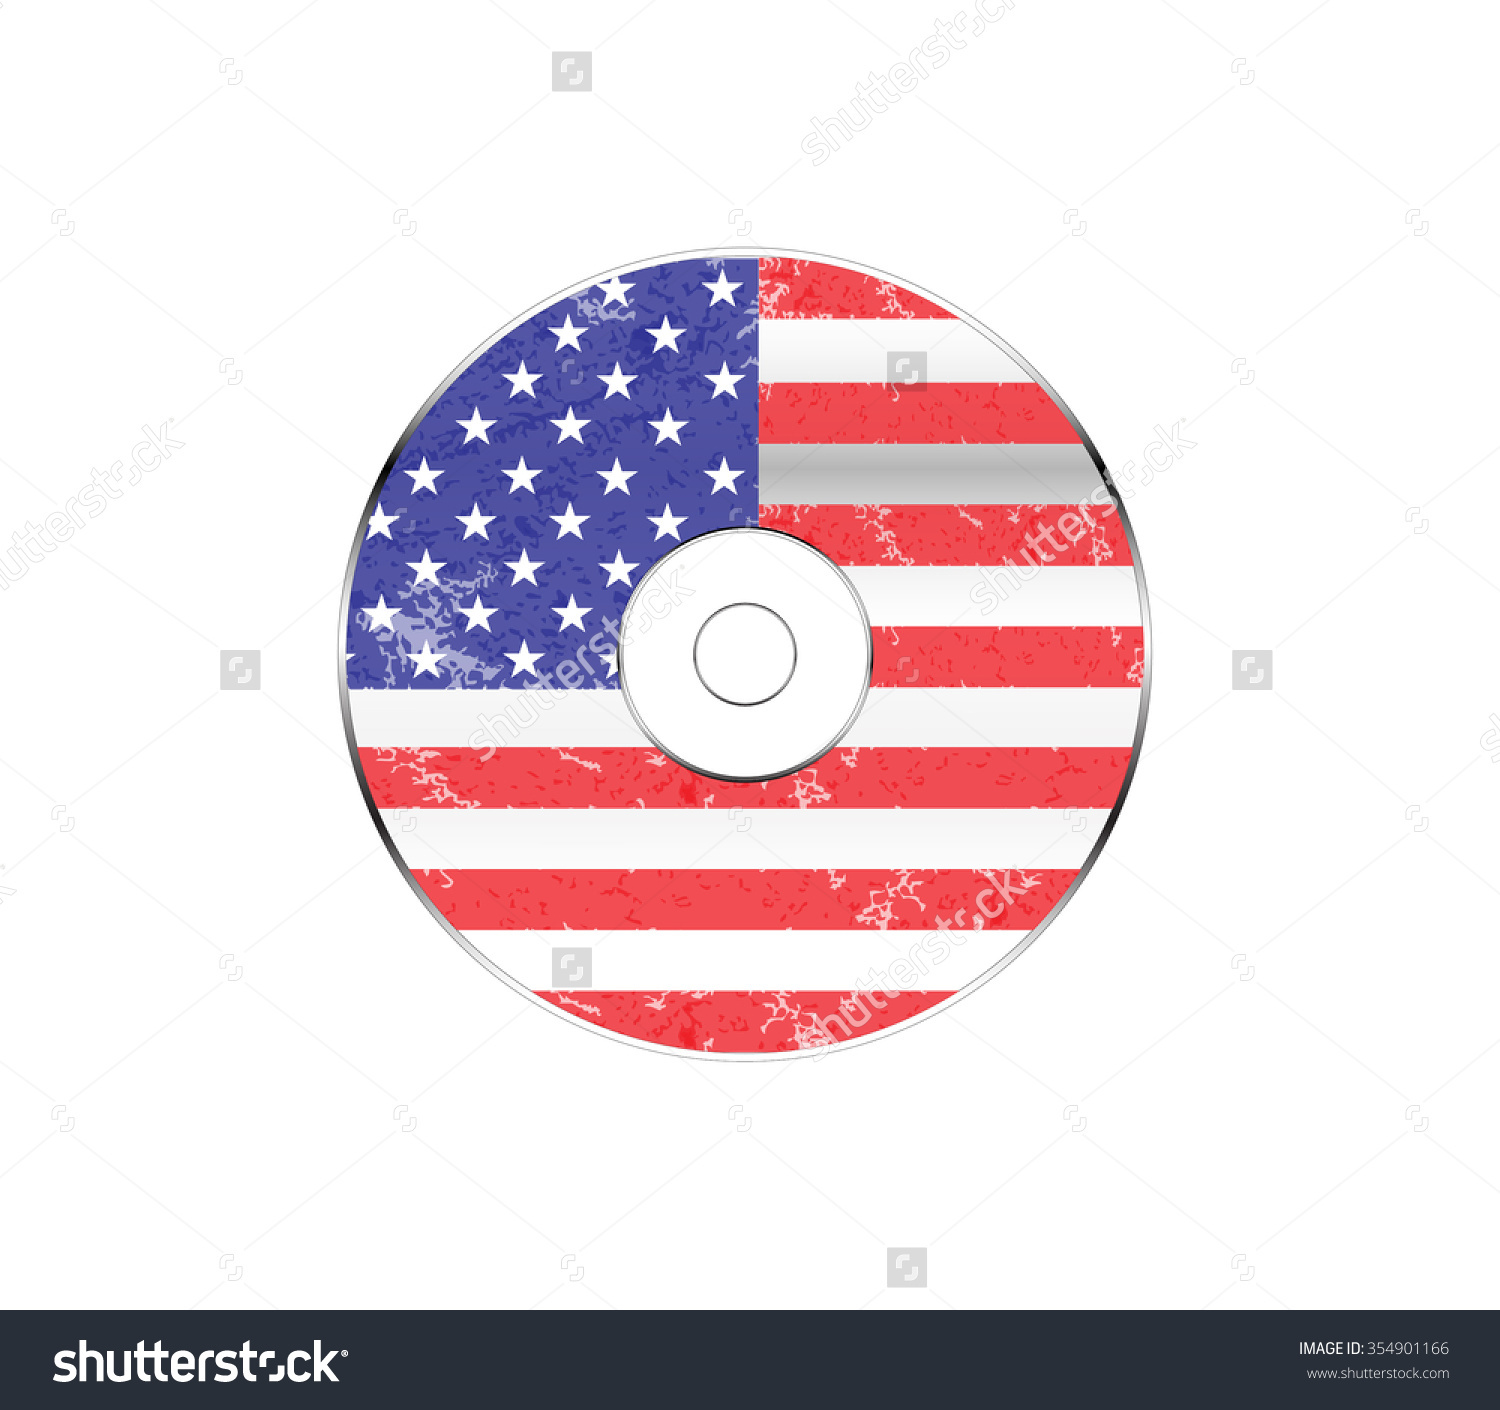 Compact Disc With United States Of America Flag, Vector.